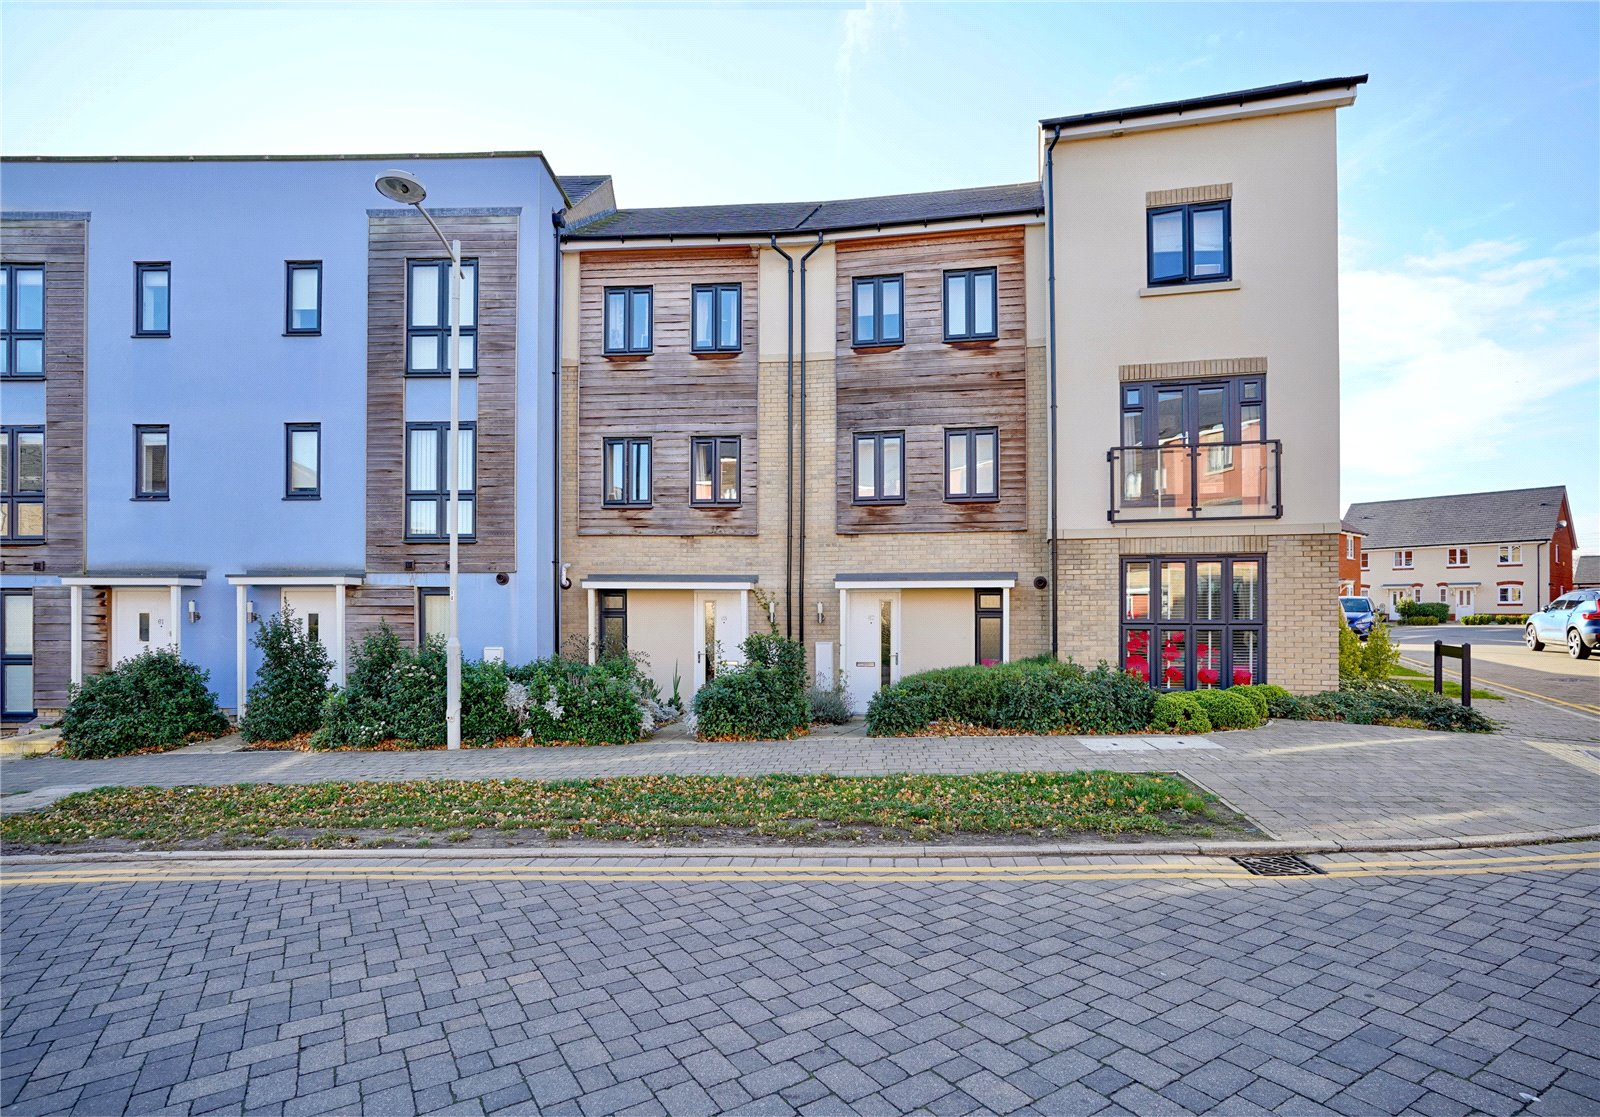 3 bed house for sale in St. Neots, PE19 6HL, PE19